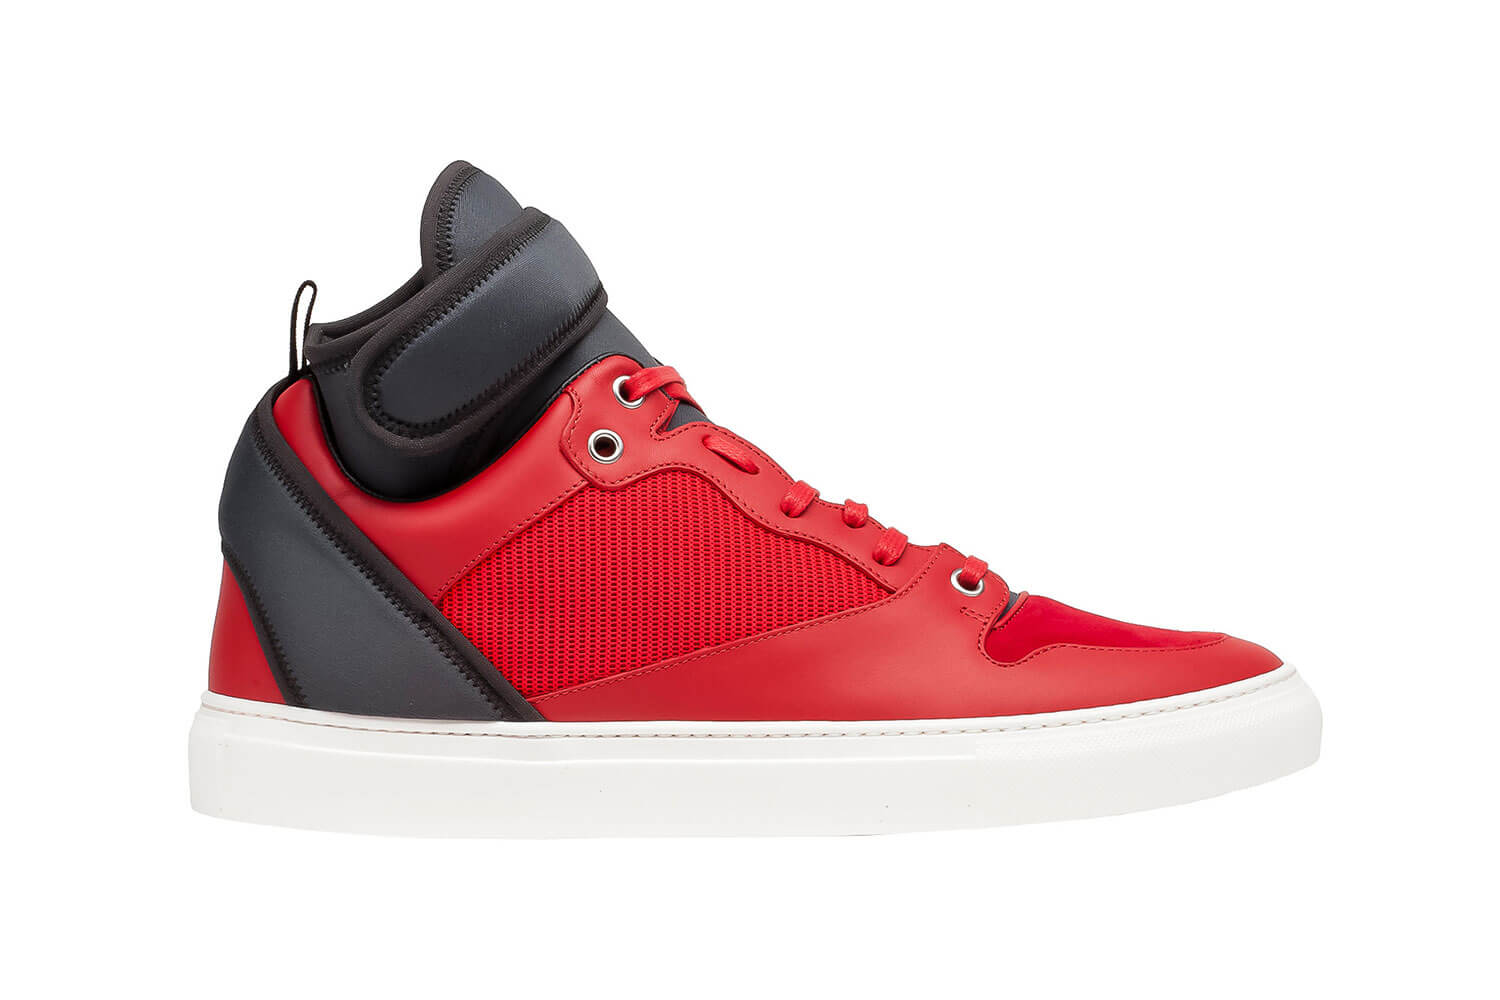 Red Neoprene High-top Sneaker By Balenciaga